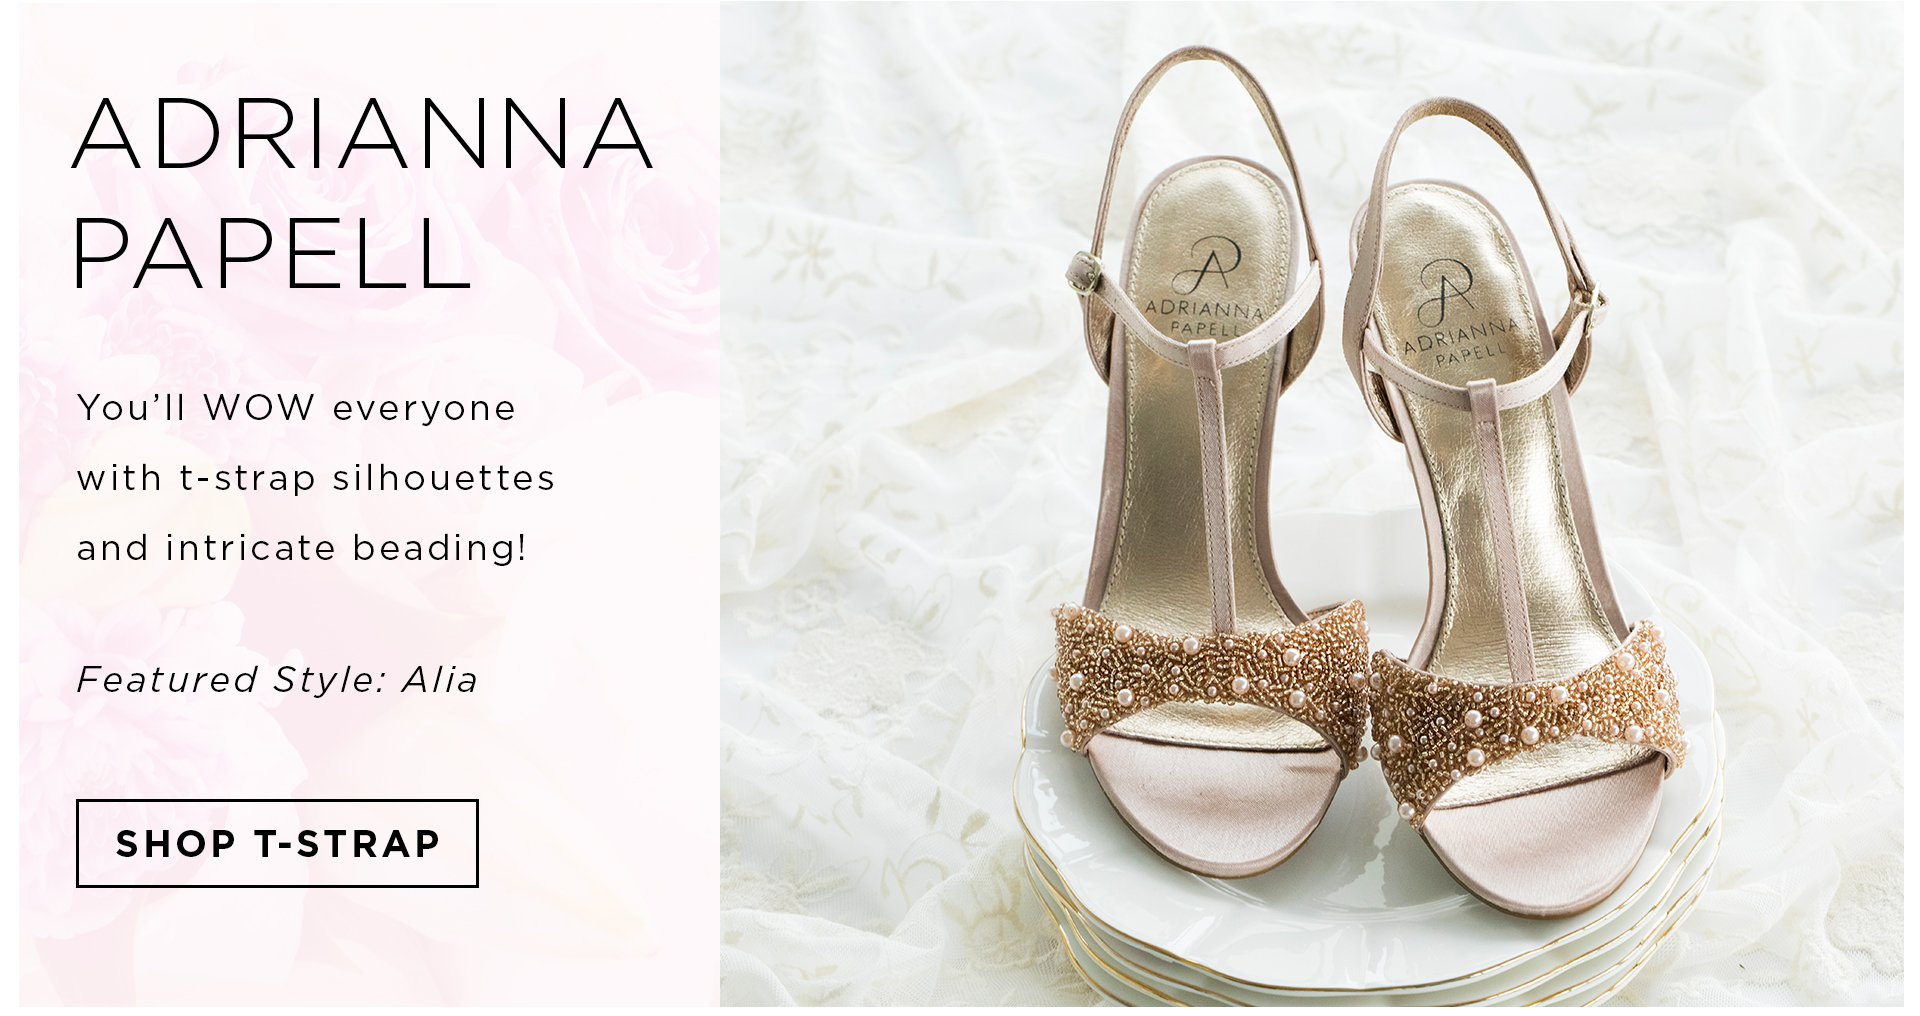 bridal shoes wedding sandals for bride Header Wedding Footwear Favorites Badgley Mischka Shop Nina Adrianna Papell